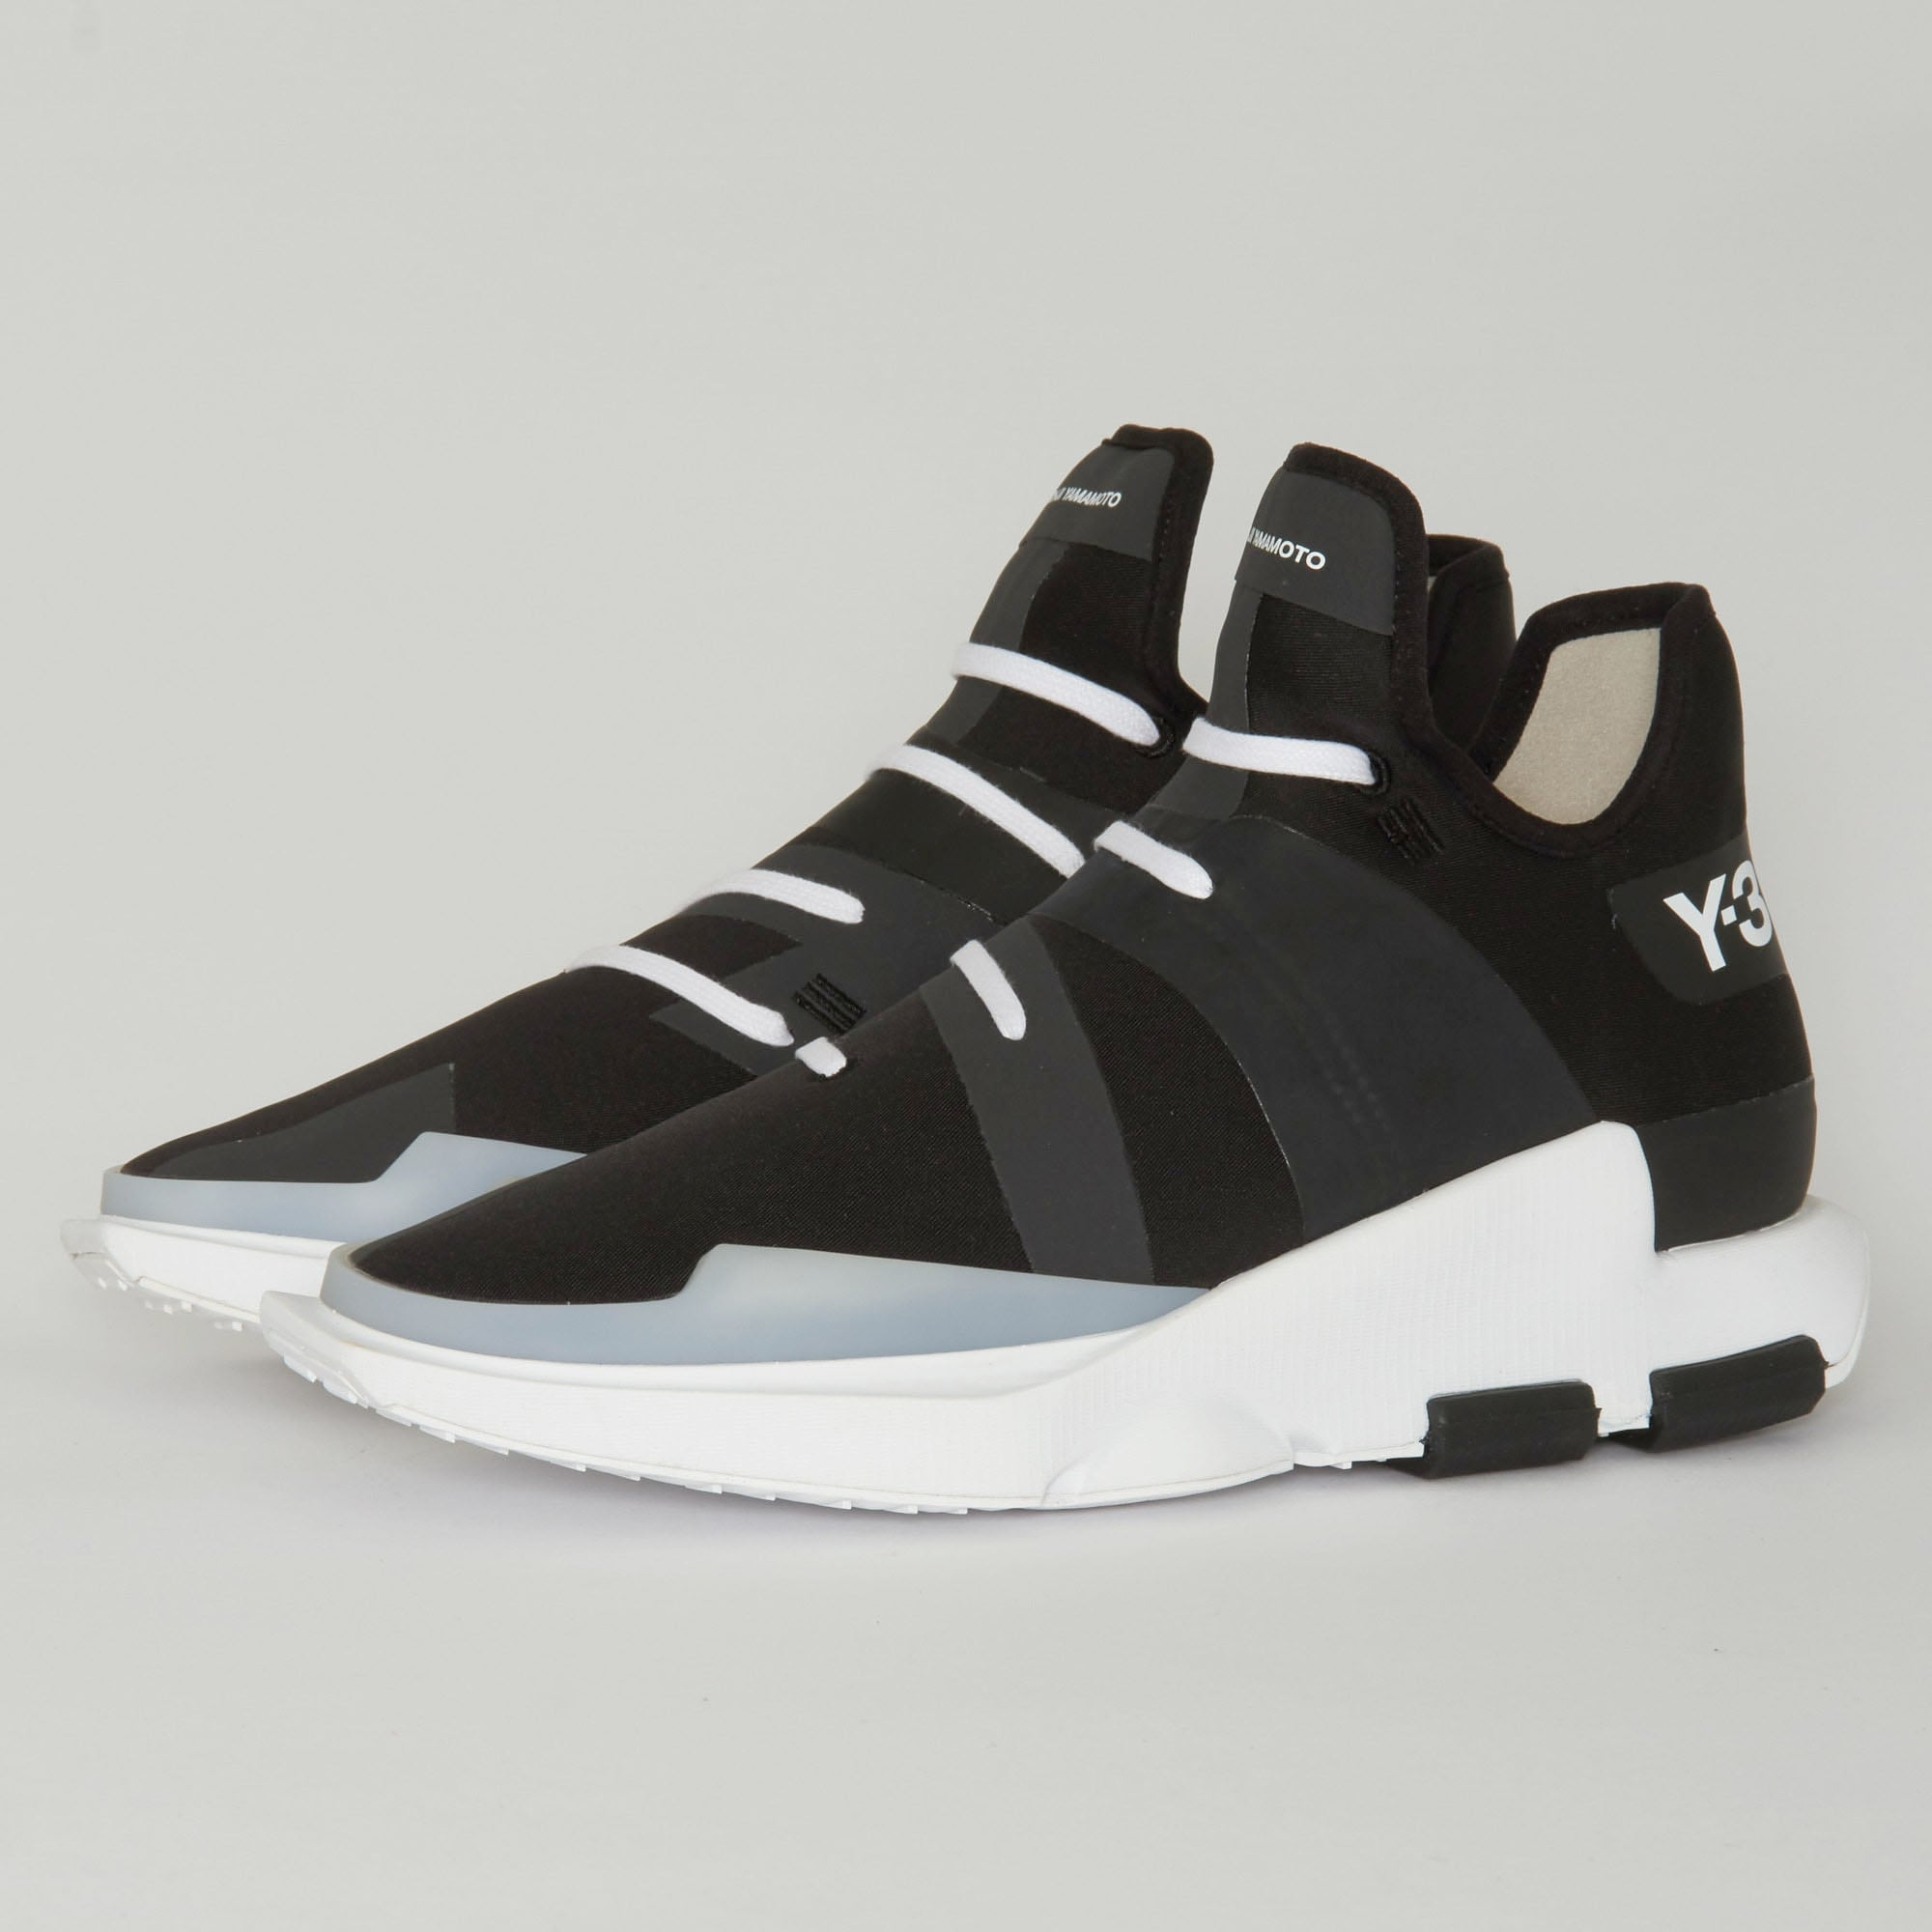 adidas uk shop y 3 noci low black sneakers. Black Bedroom Furniture Sets. Home Design Ideas